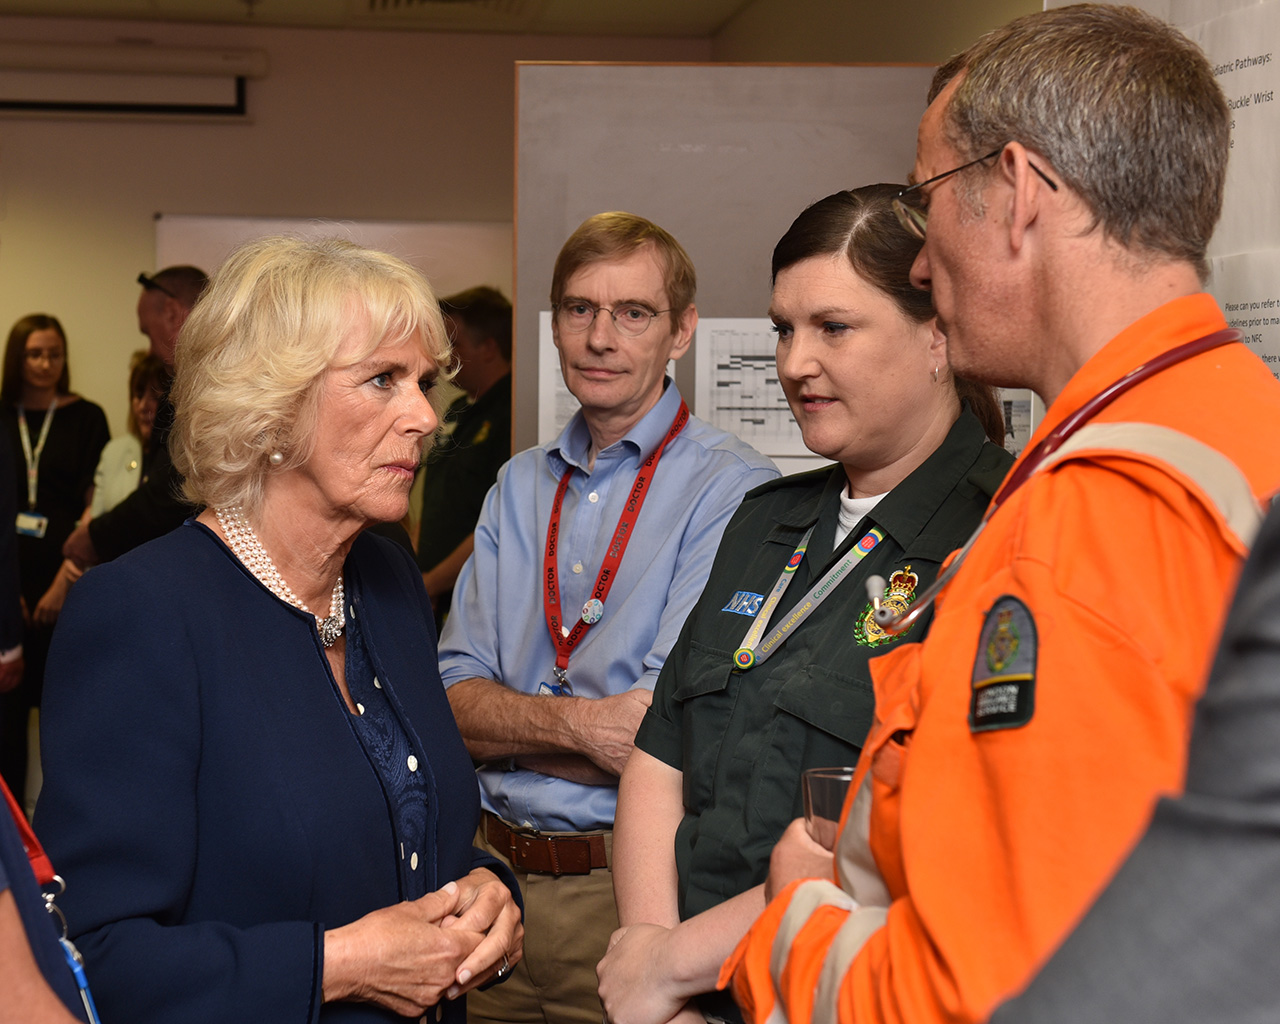 HRH Prince Charles visits victims of Borough Market bombing